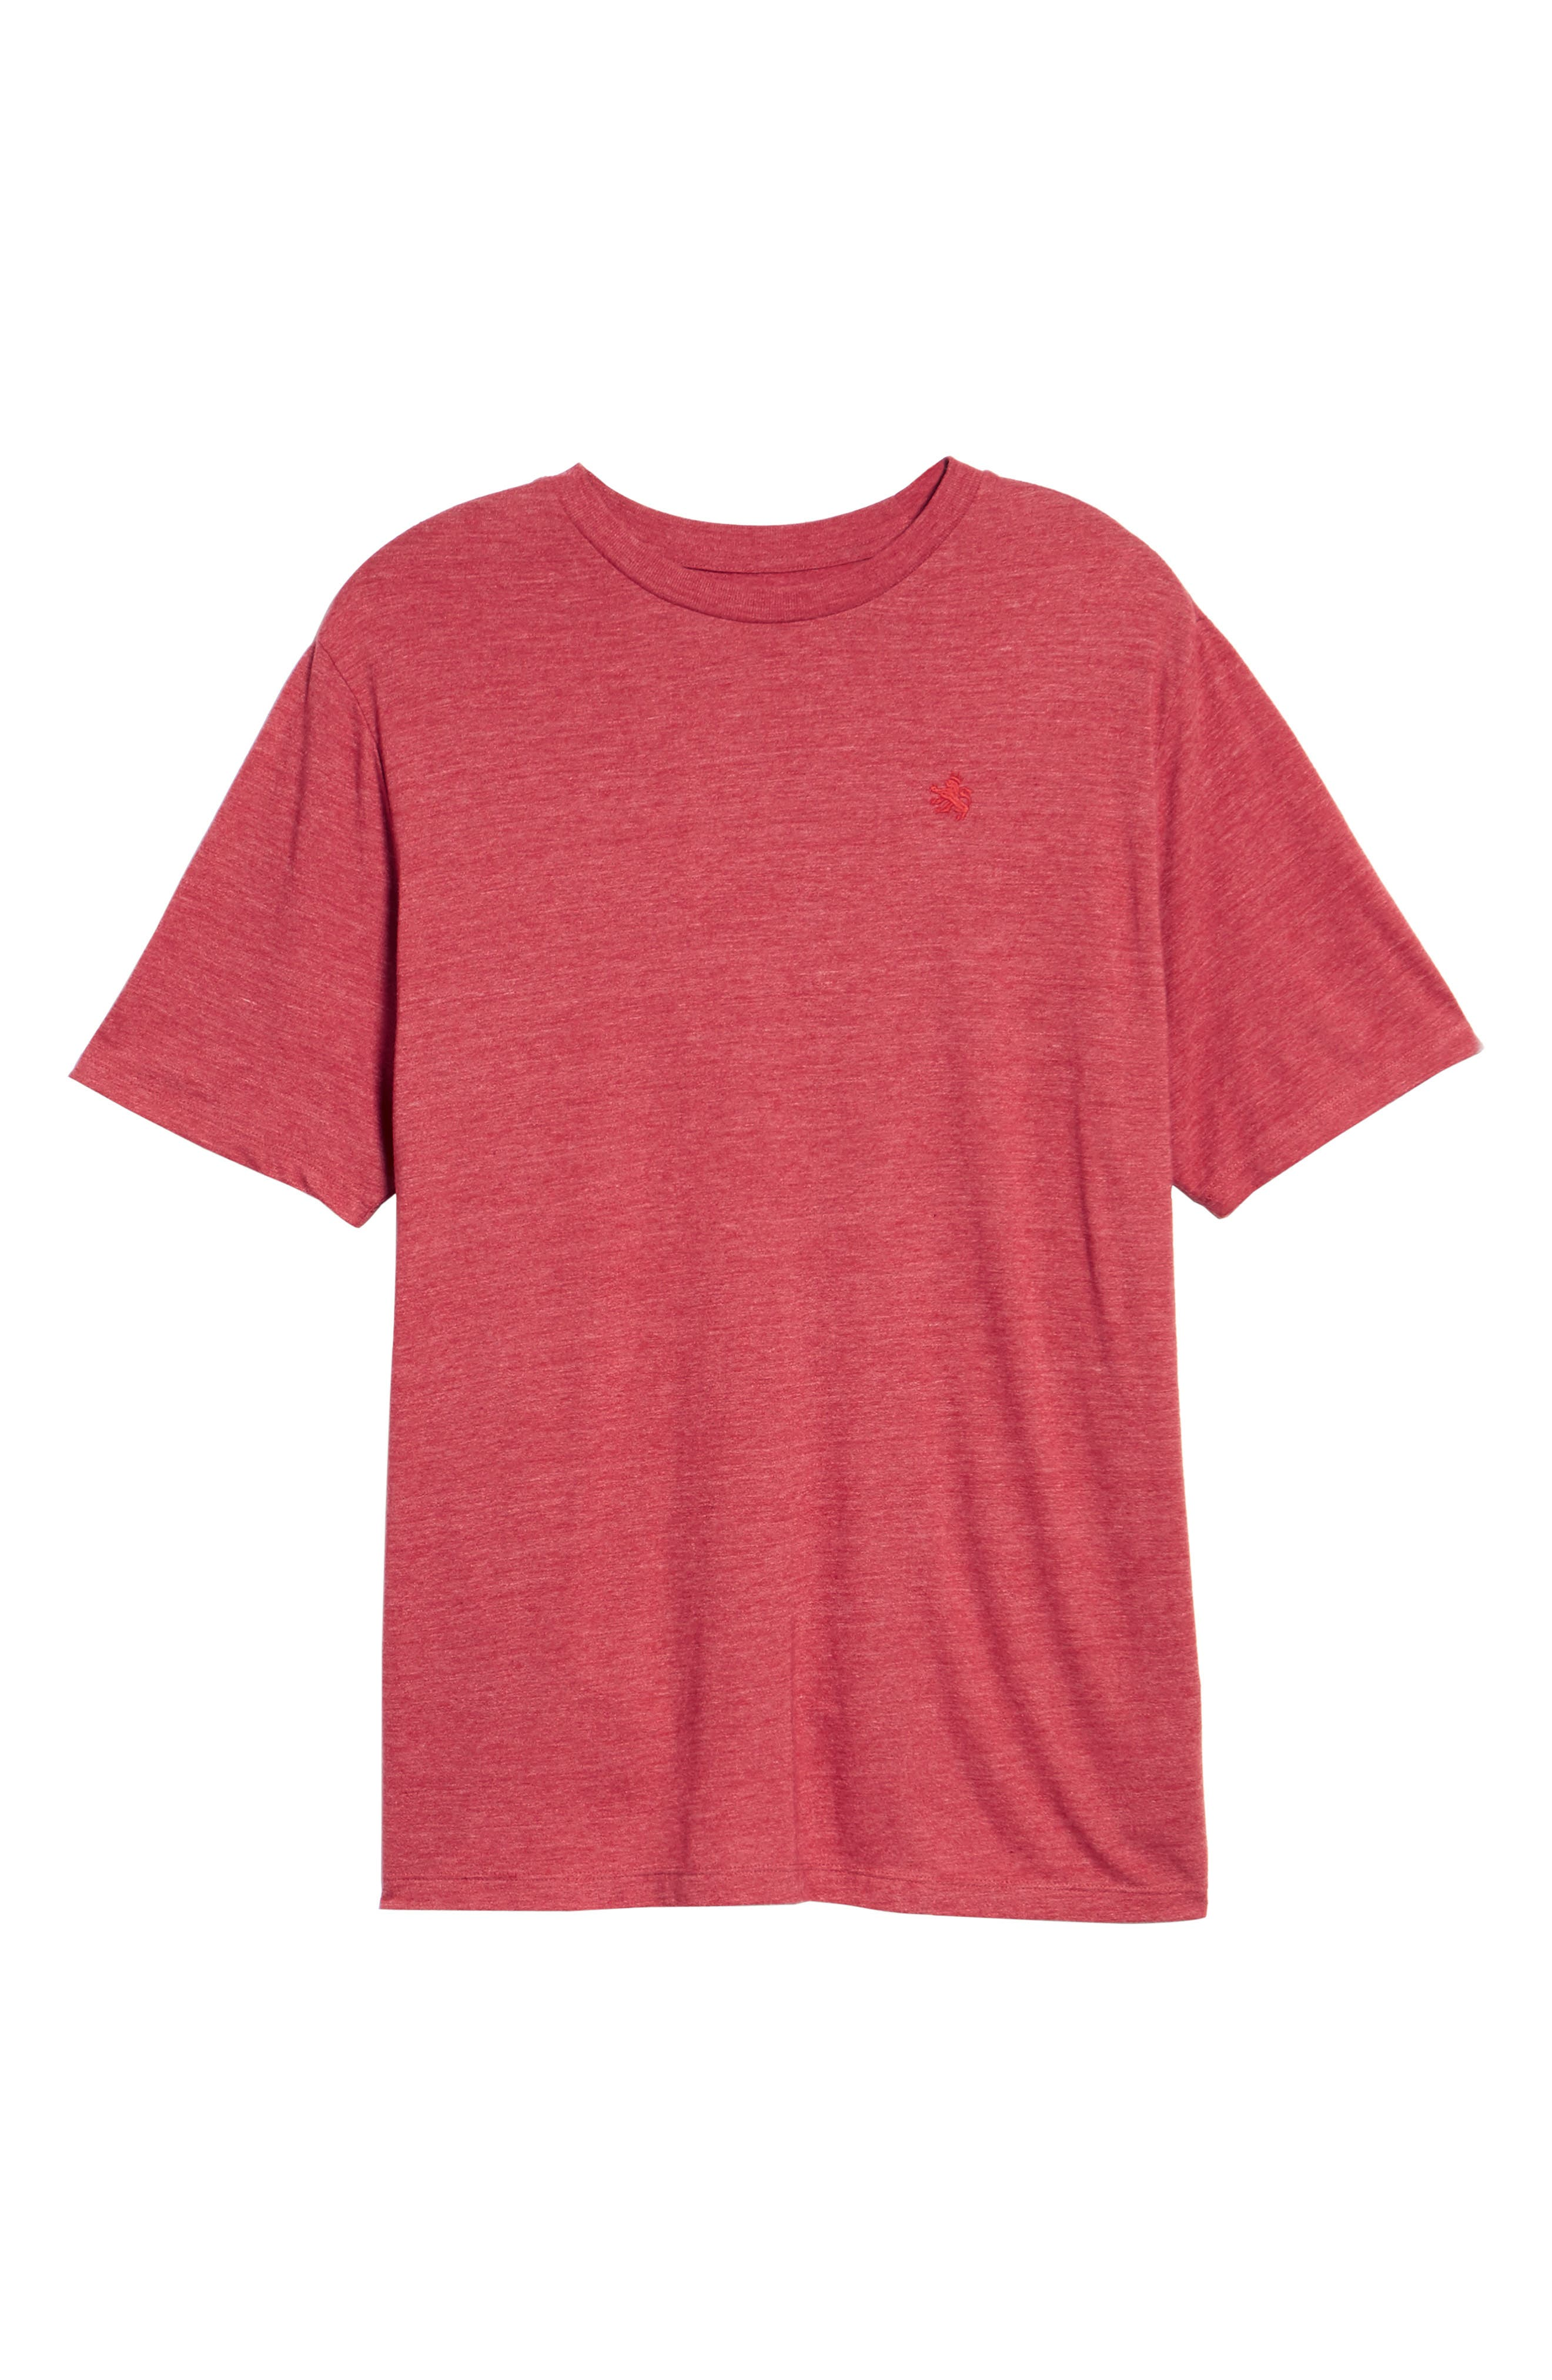 For the Good Life Graphic T-Shirt,                             Alternate thumbnail 6, color,                             Red Heat